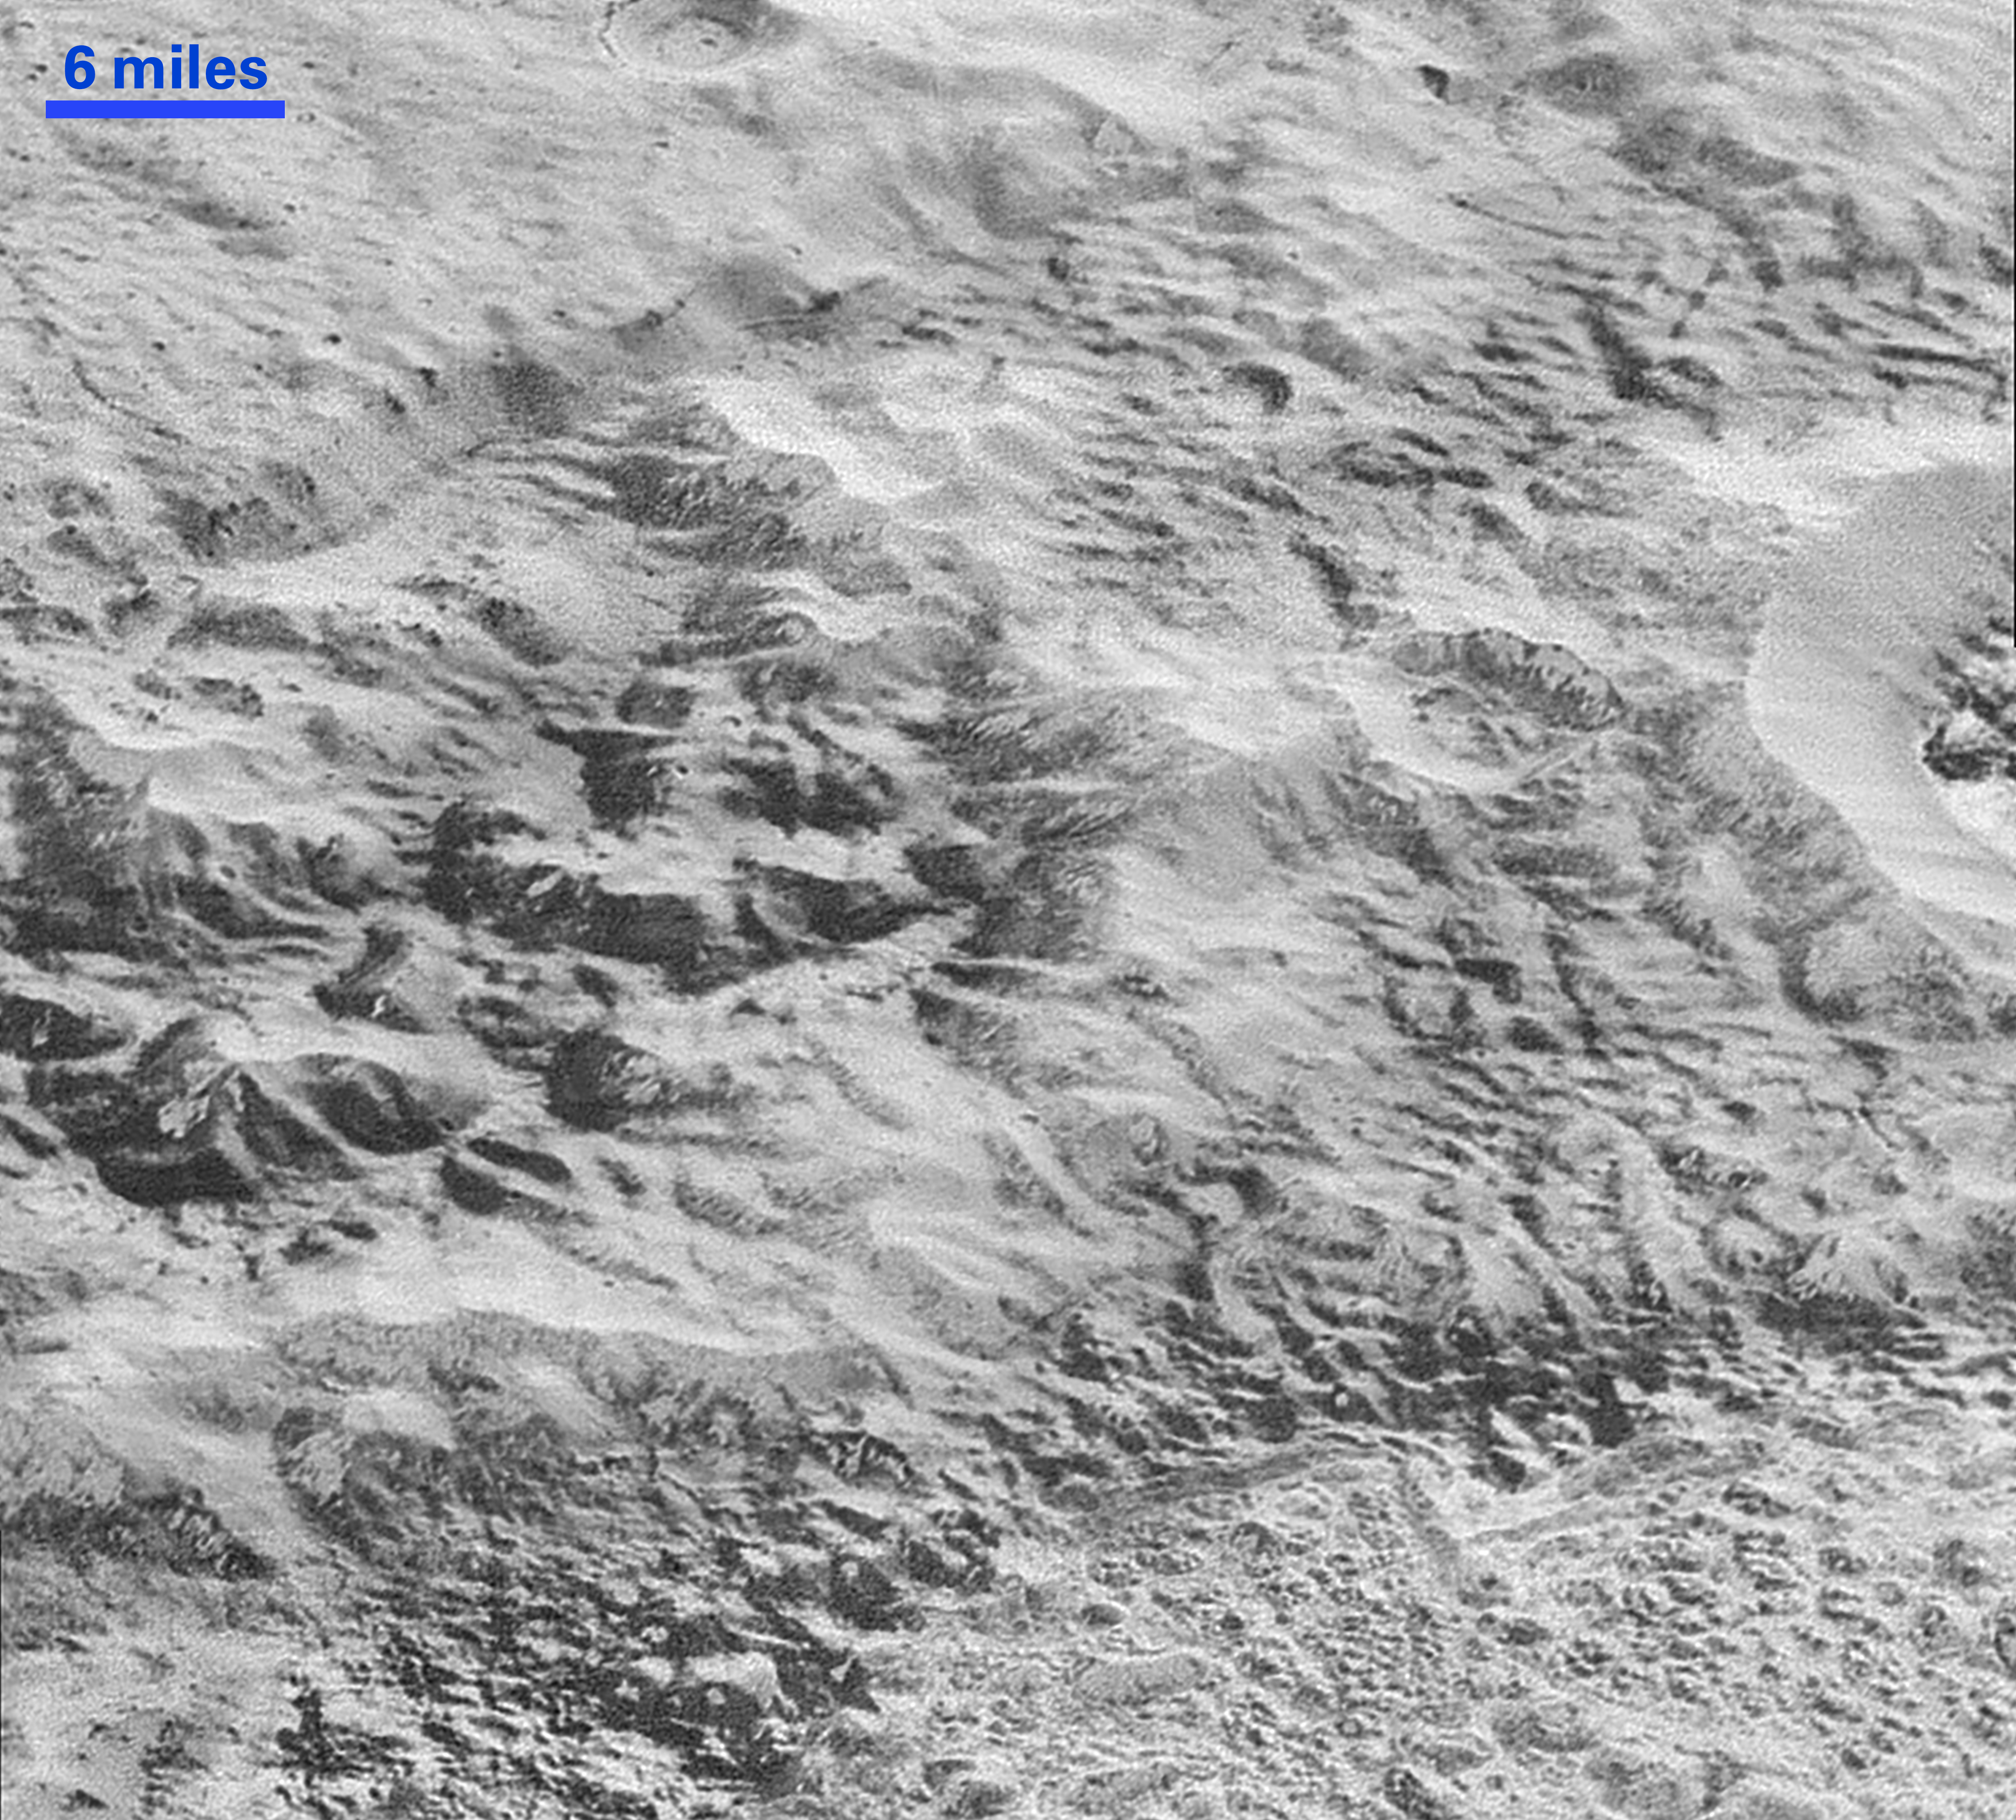 Pluto's 'Badlands': This highest-resolution image from NASA's New Horizons spacecraft shows how erosion and faulting have sculpted this portion of Pluto's icy crust into rugged badlands topography. Credits: NASA/JHUAPL/SwRI